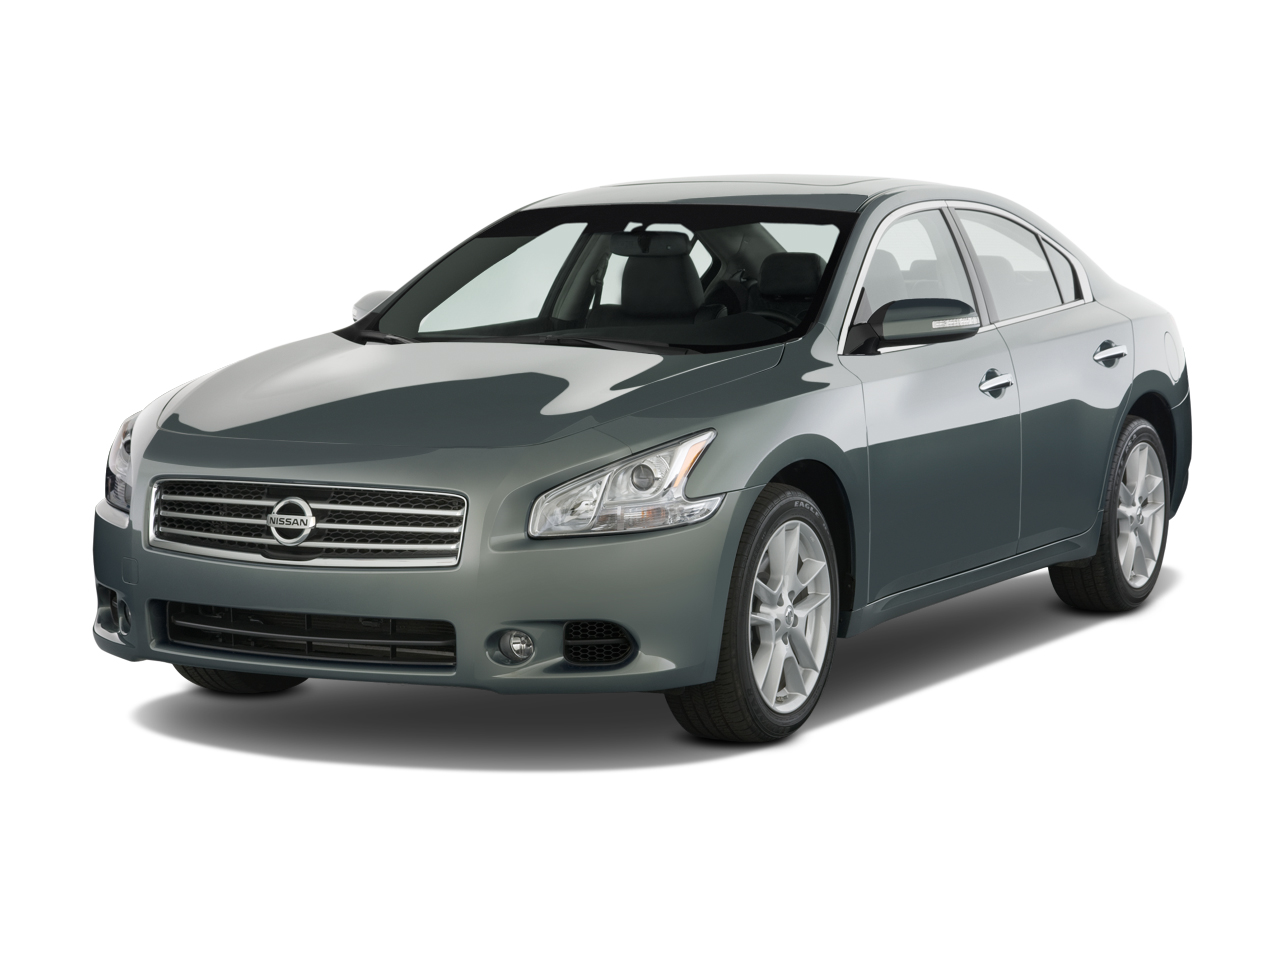 2010 Nissan Maxima >> 2010 Nissan Maxima Review Ratings Specs Prices And